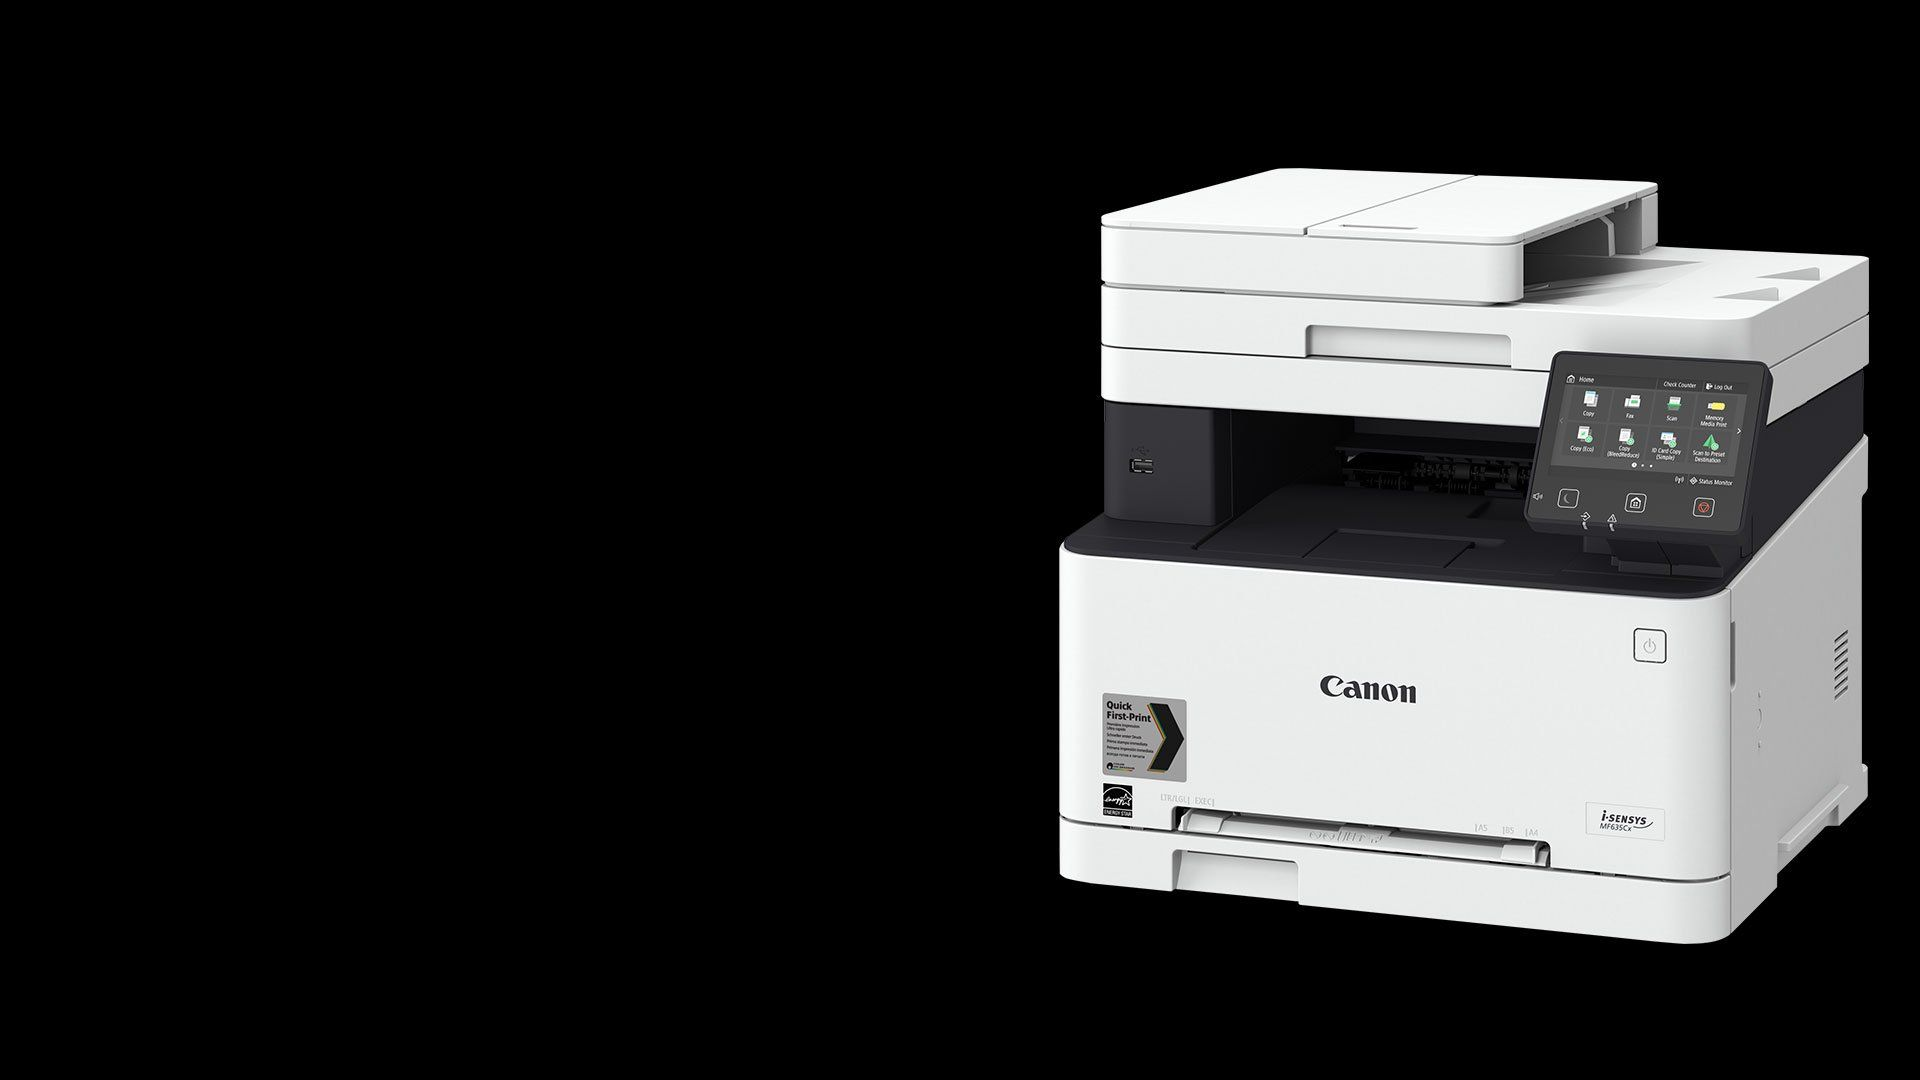 Canon Mf630 Series Business Printers Amp Fax Machines